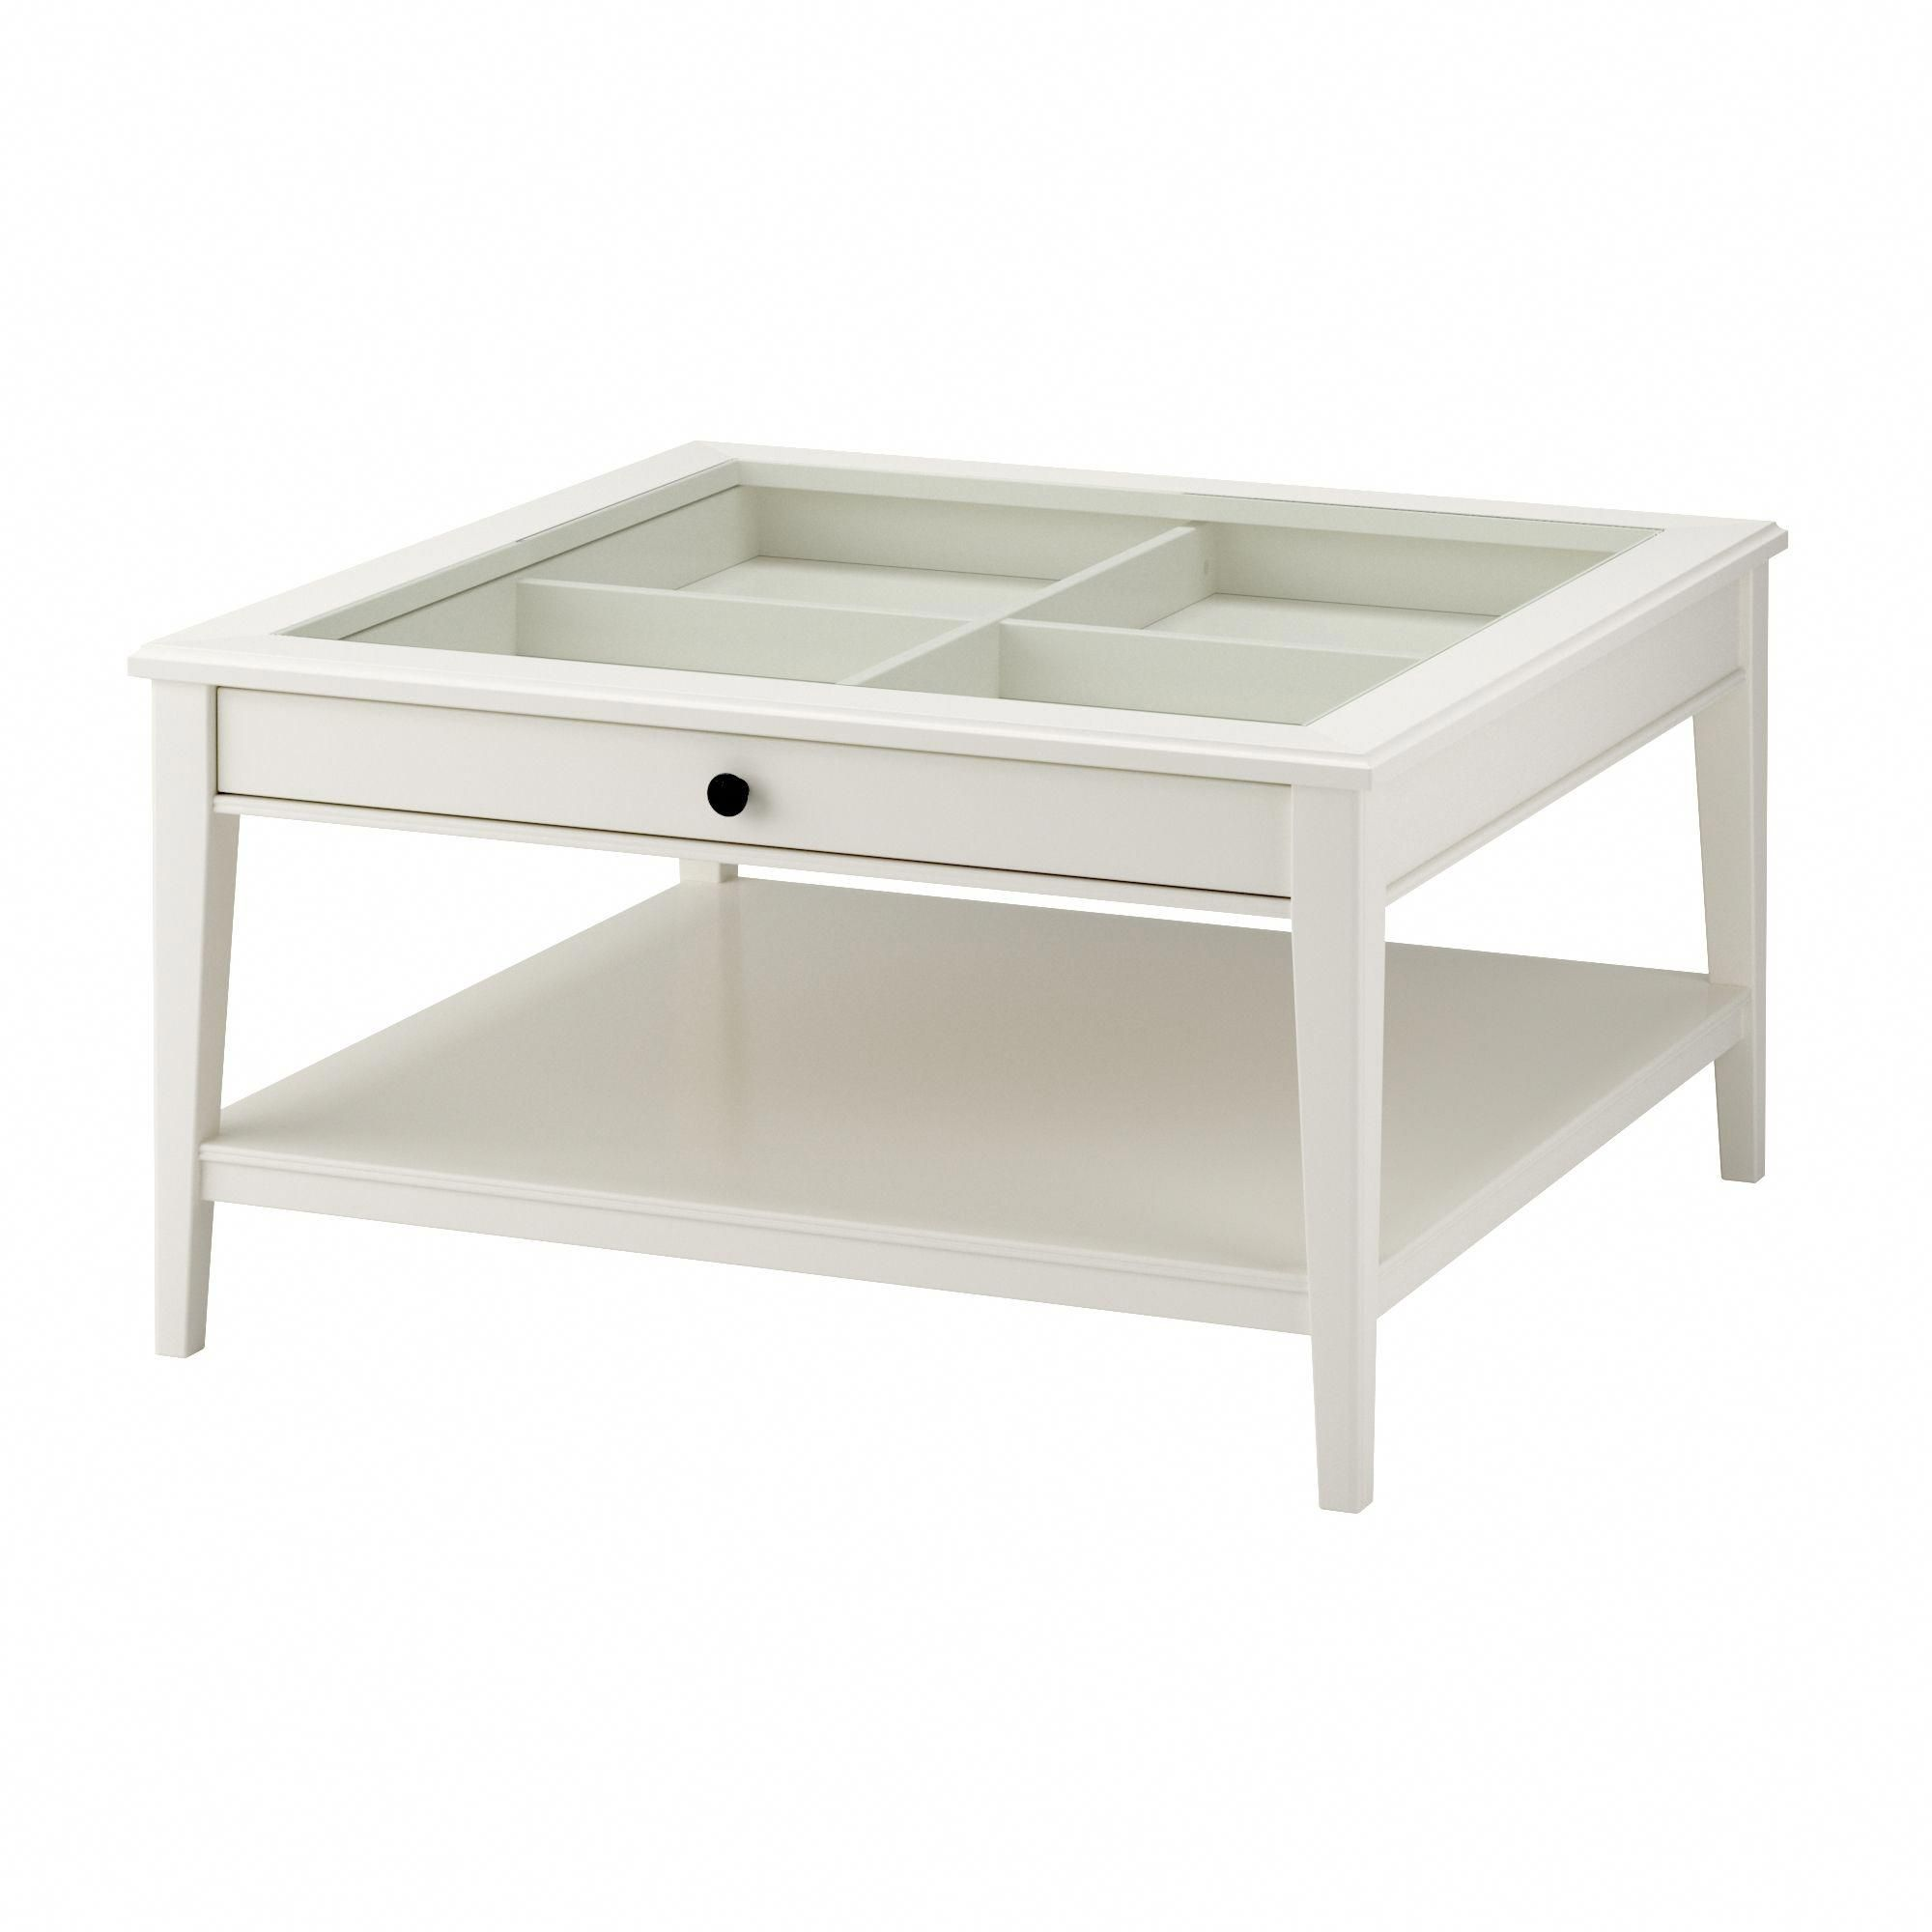 Liatorp Coffee Table White Glass Ikea Homedecorationtable